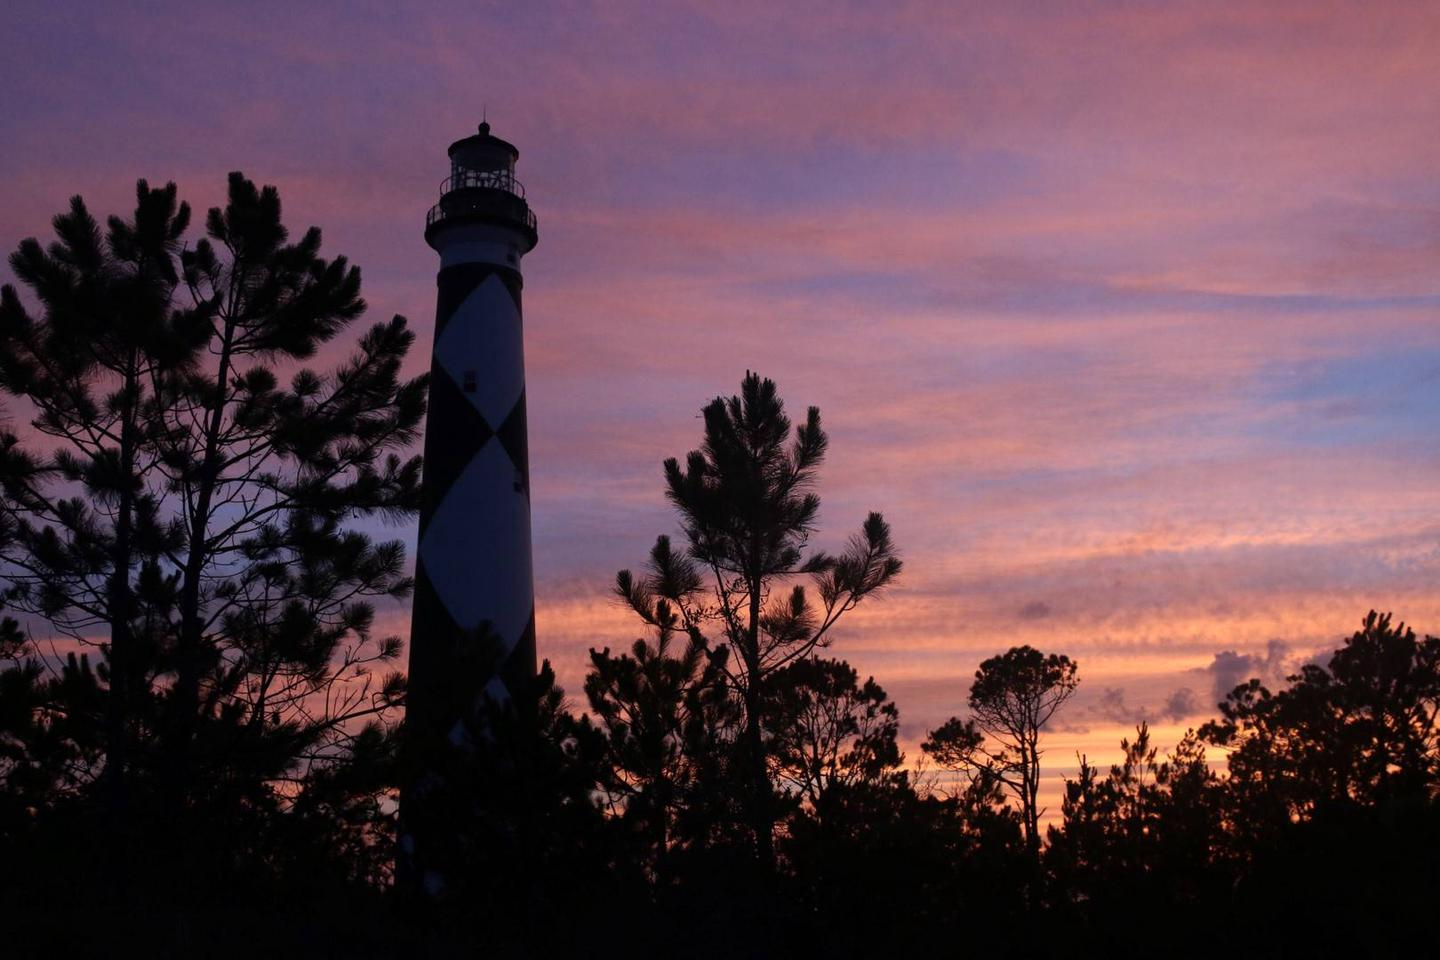 Silhouette of the Cape Lookout Lighthouse in the pink sky at dusk.  Dusk creates wondrous shadows and silhouettes across the South Core landscape on the Evening at the Cape tour.